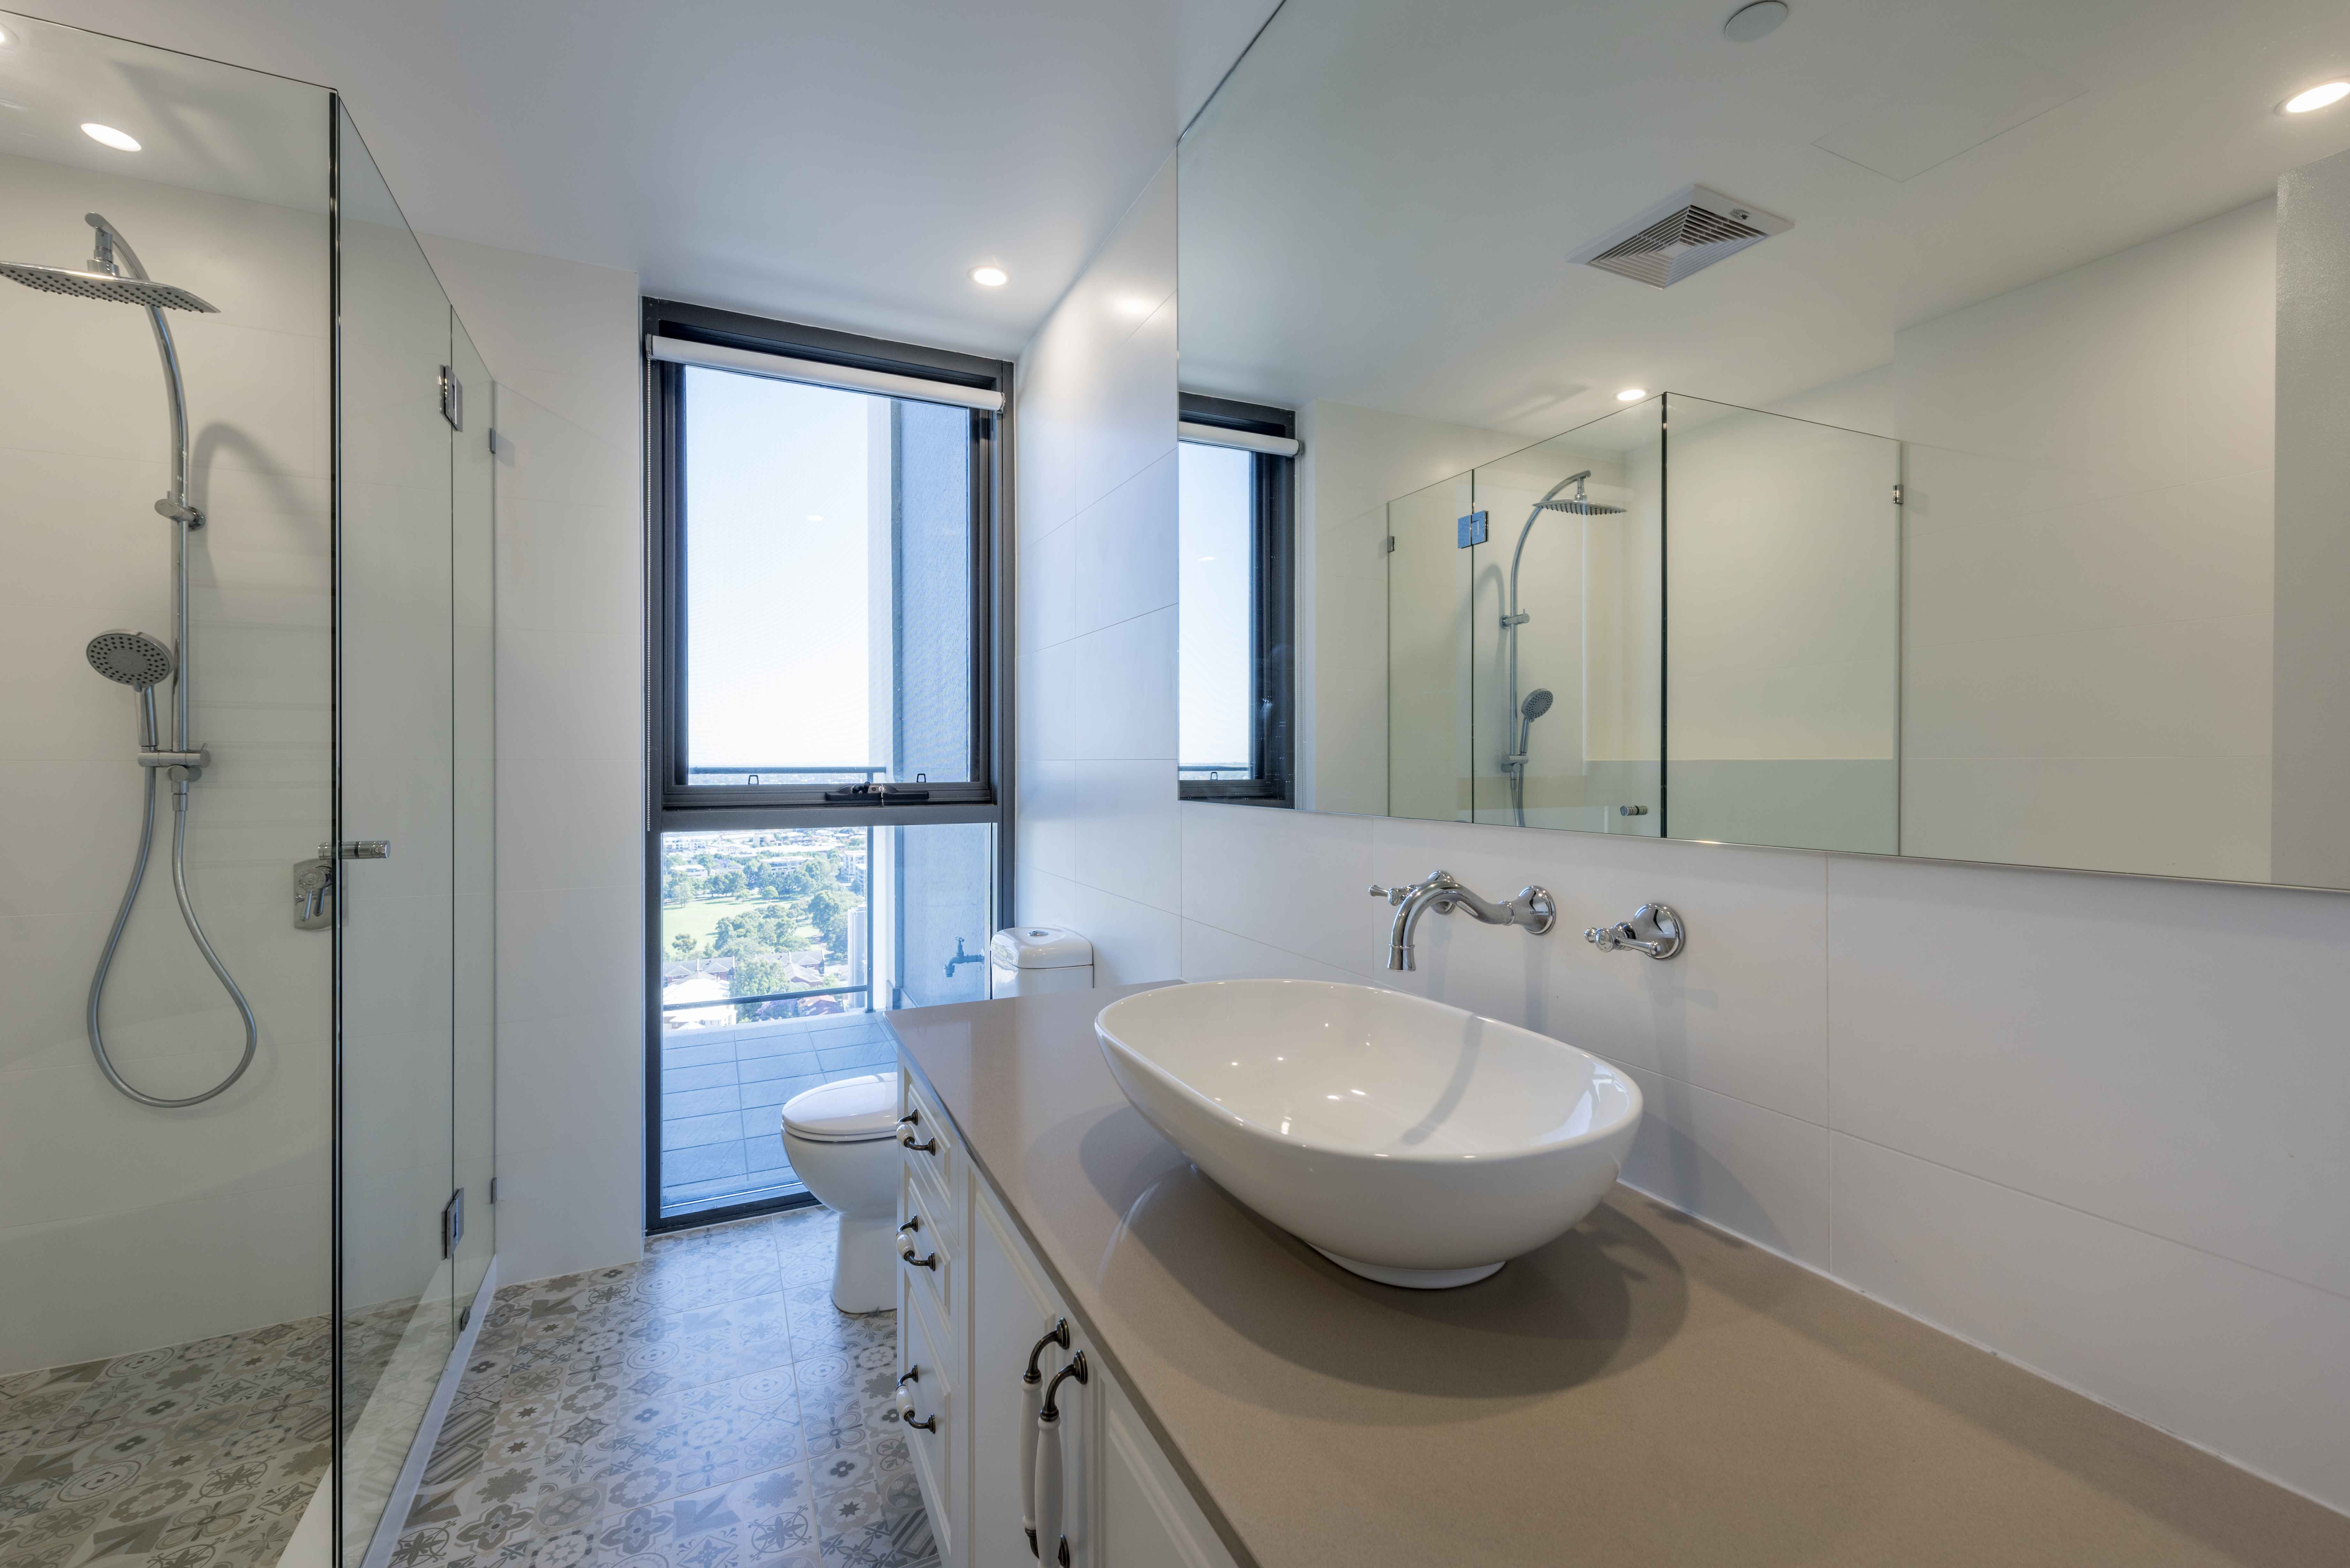 Bathroom Renovation Ideas Perth bathrooms gallery | veejay's renovation